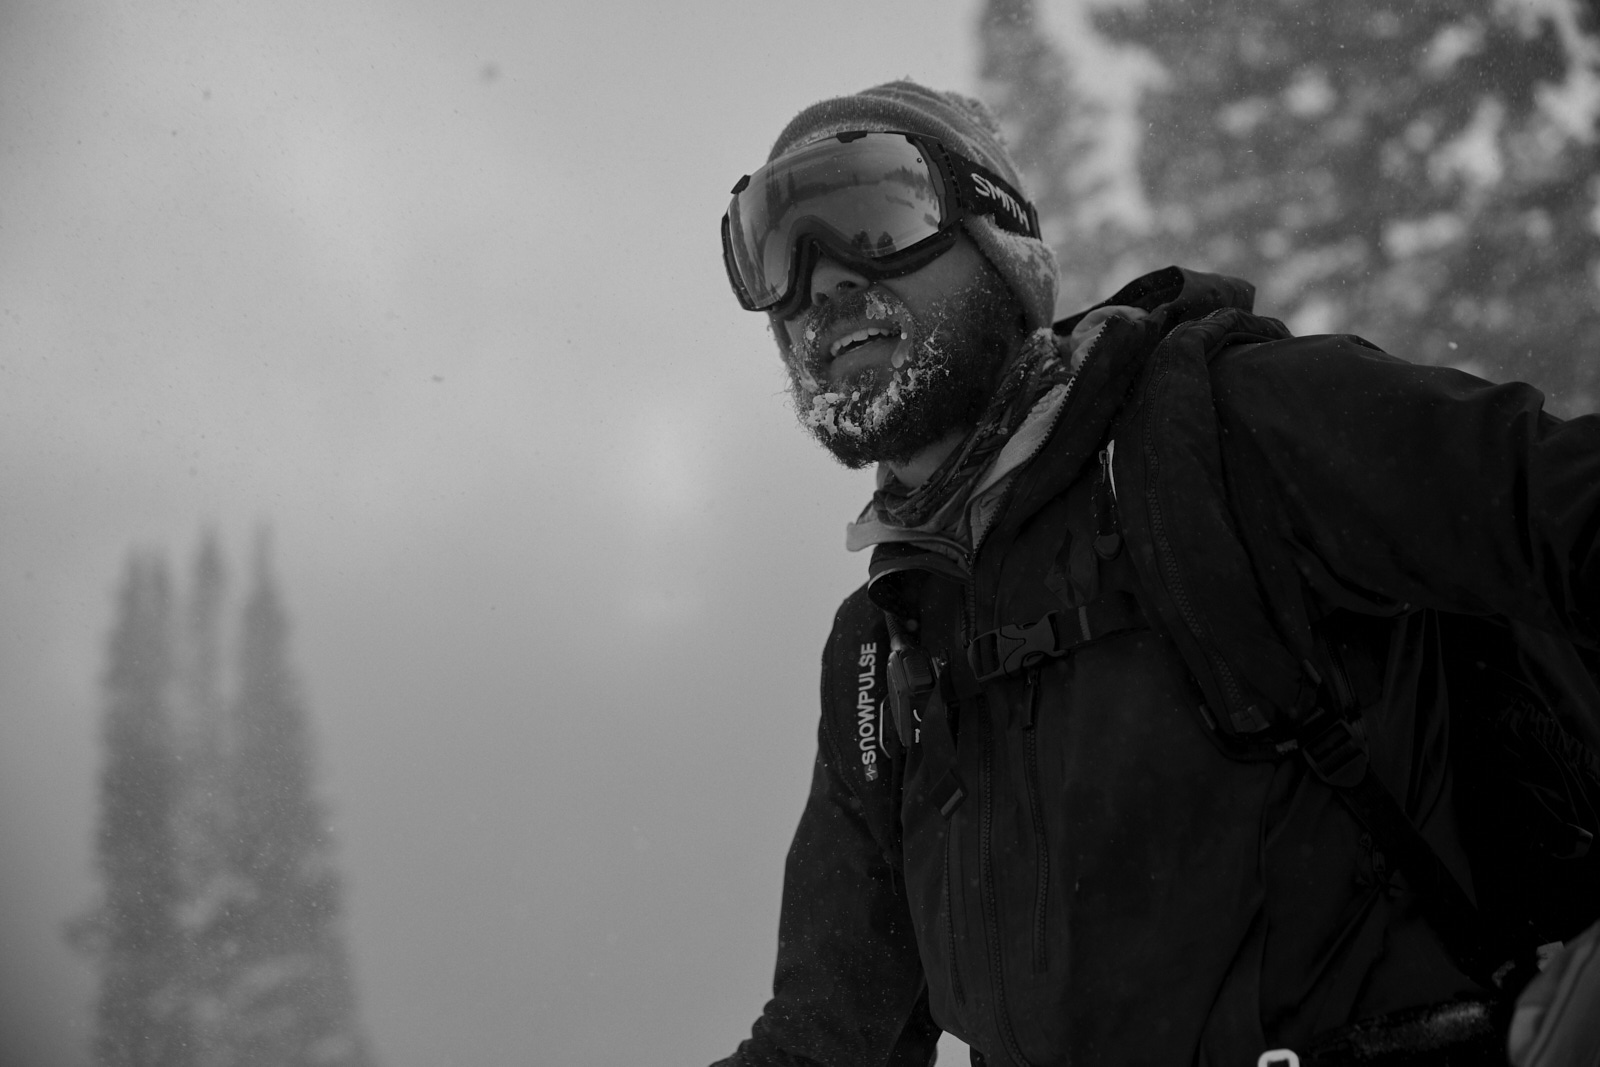 Extreme action sports and athletes traveling throughout Colorado. Photographed and filmed several athletes ranging from ice climbing, skinning and skiing, to snowmobiling during extreme winter conditions.